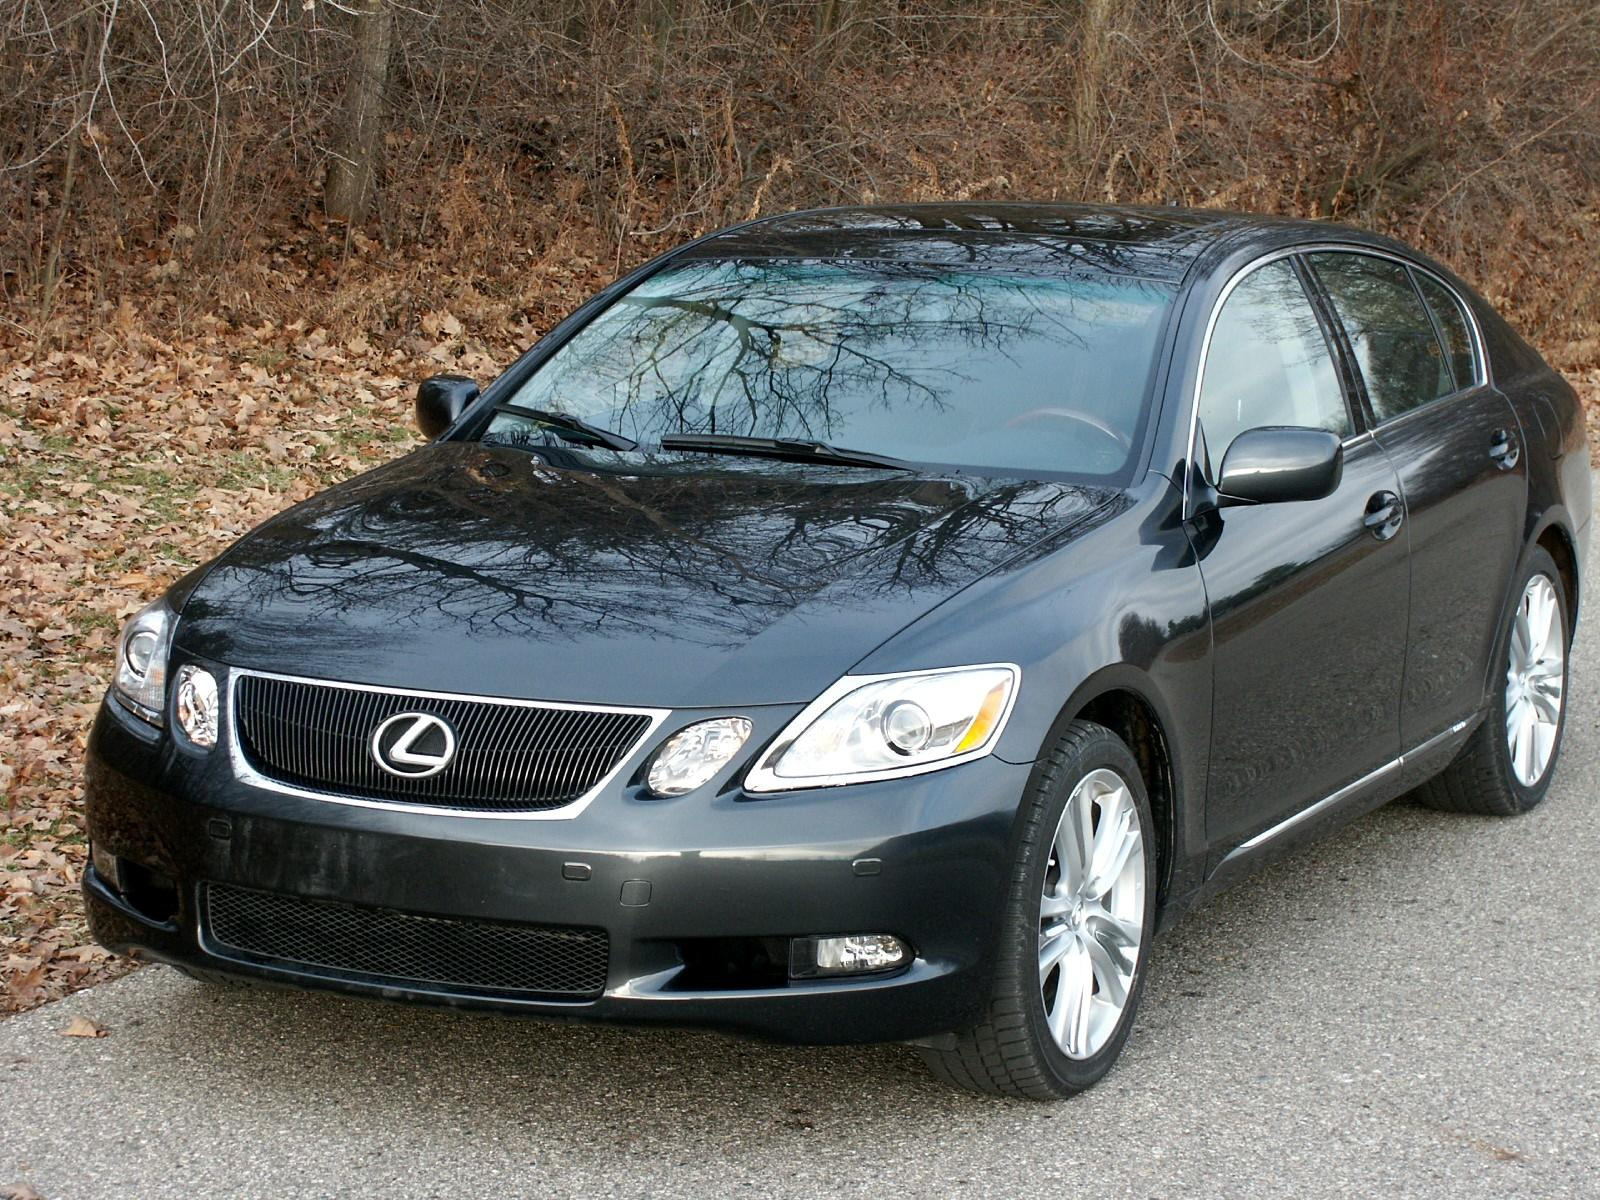 2007 lexus gs 450h information and photos momentcar. Black Bedroom Furniture Sets. Home Design Ideas